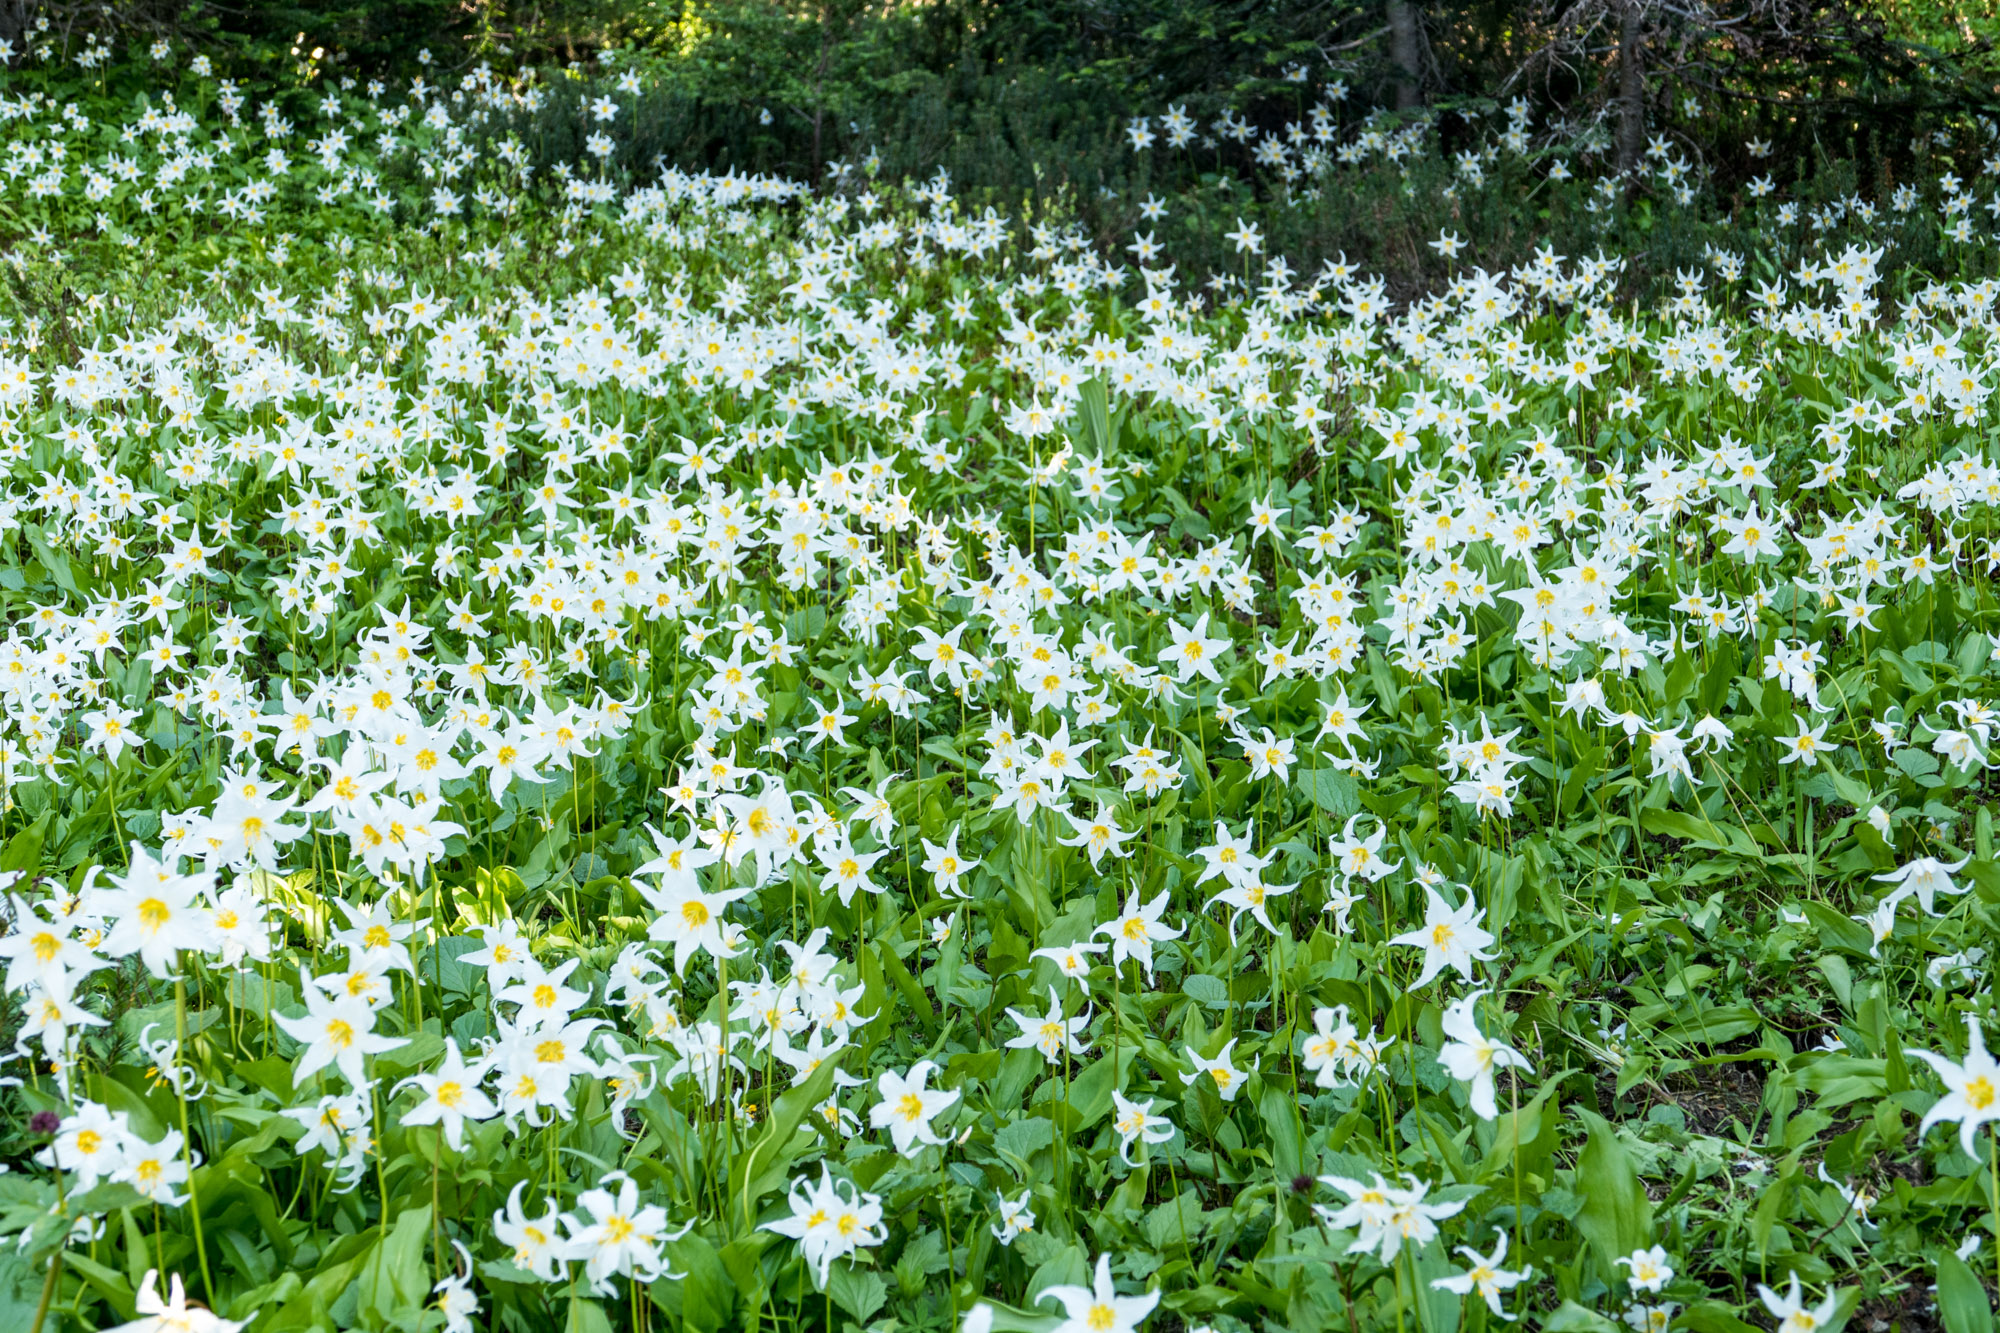 An avalanche of lilies